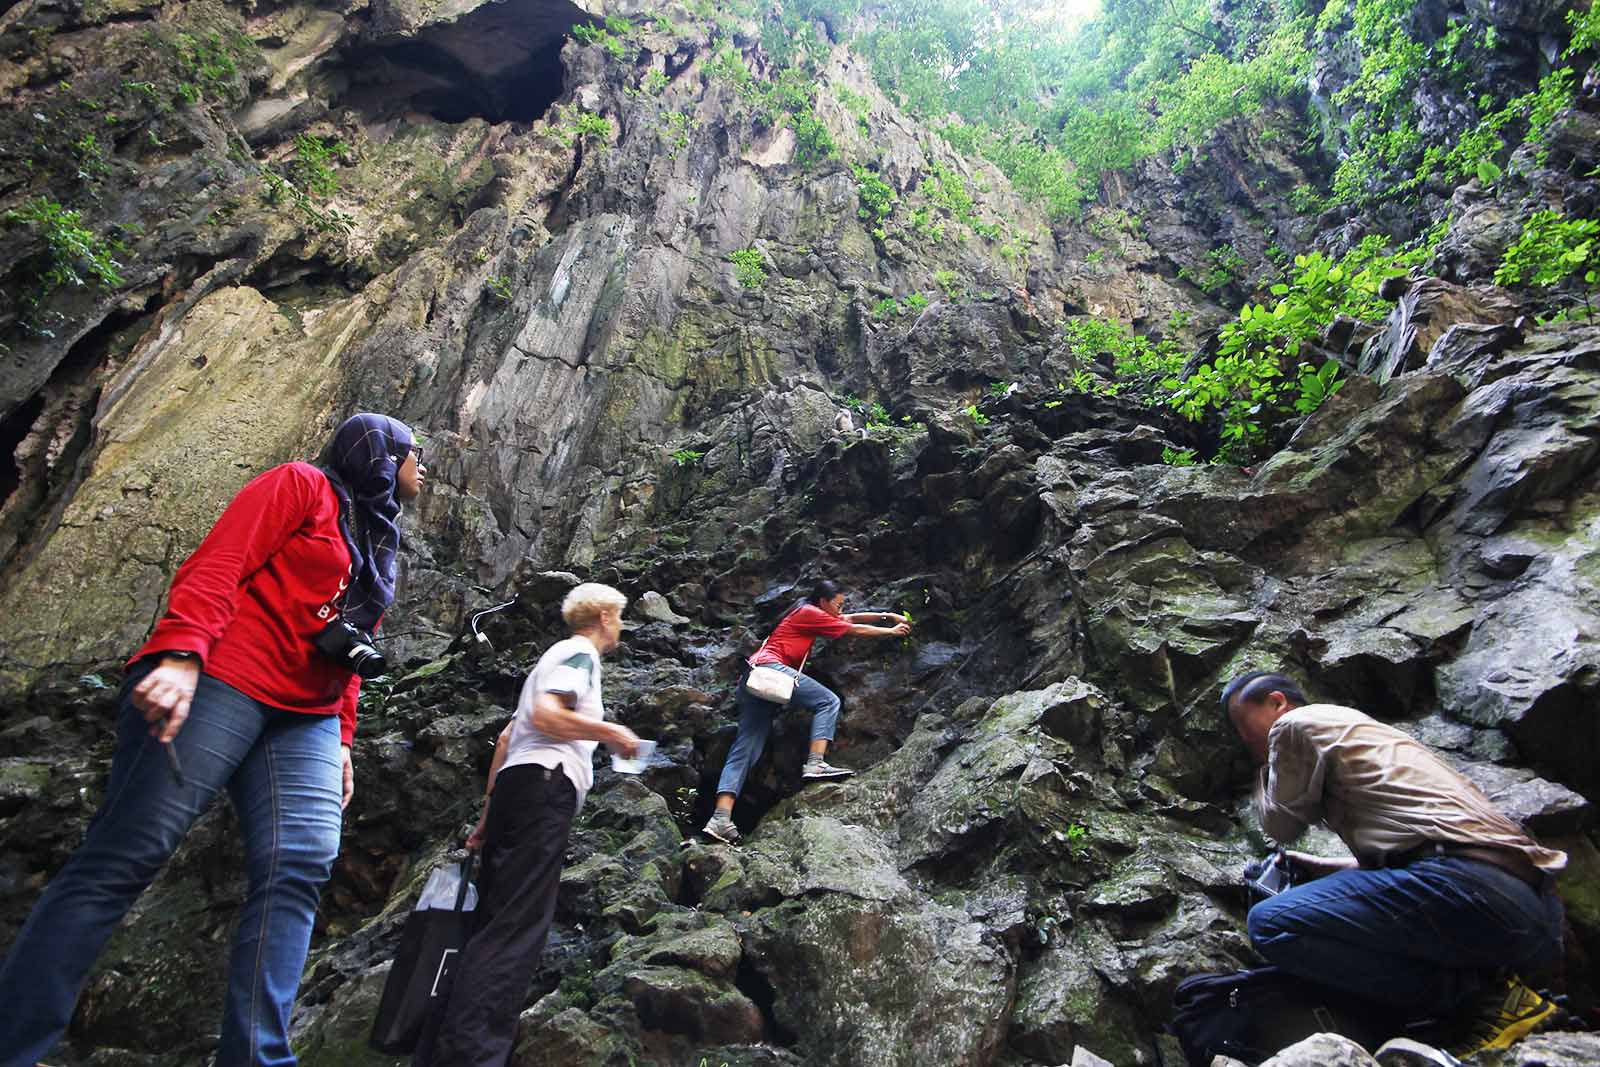 Collecting Epithema parvibracteatum, endemic to Batu Caves and critically endangered; Ruth Kiew is second from left; Nur Atiqah Abd Rahman is on the left. (SL Wong)